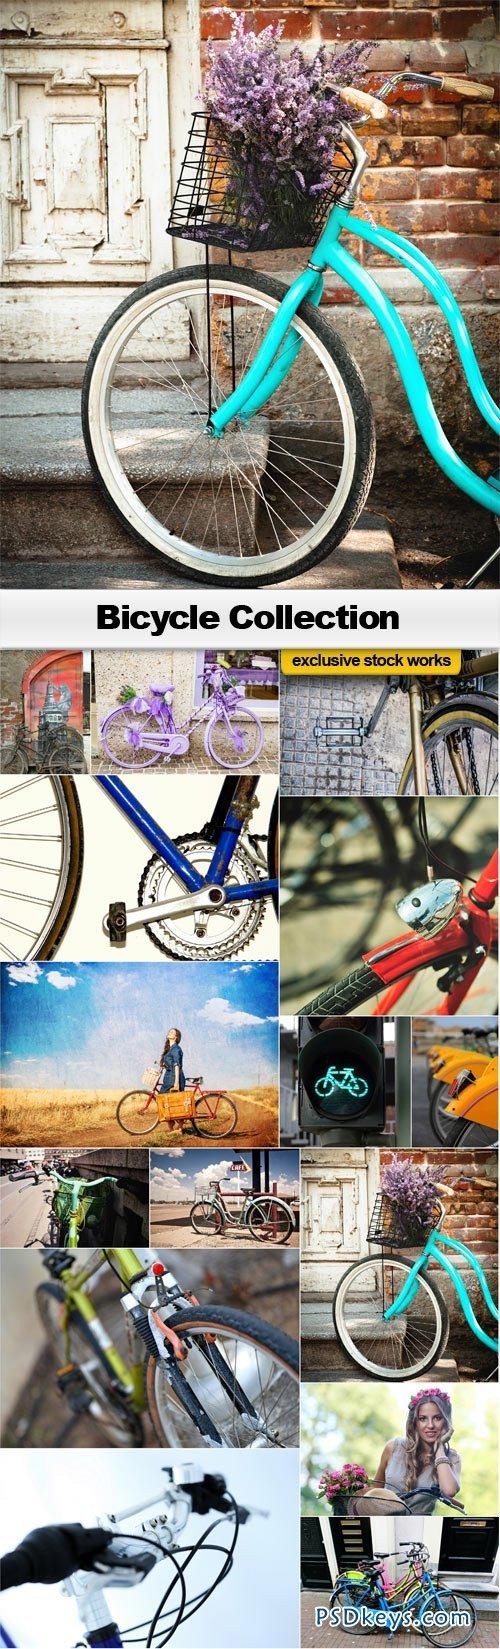 Bicycle Collection - 15xJPEGs